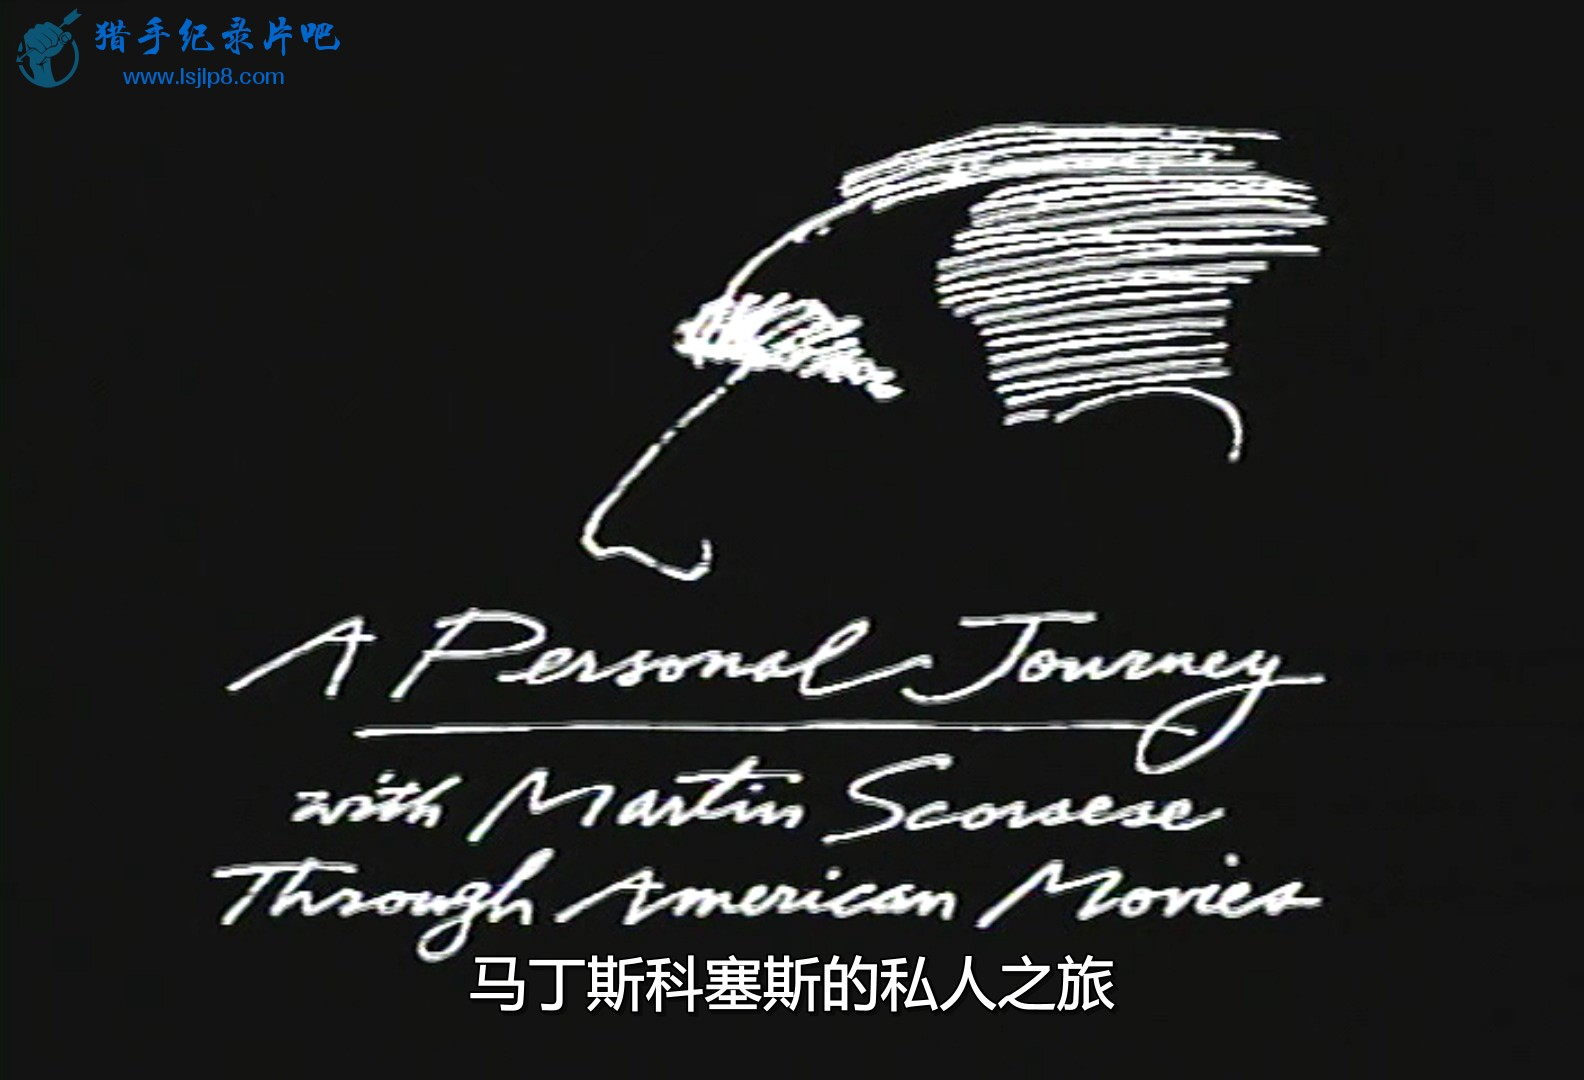 A.Personal.Journey.With.Martin.Scorsese.Through.American.Movies.1995.Part1.DVDRi.jpg